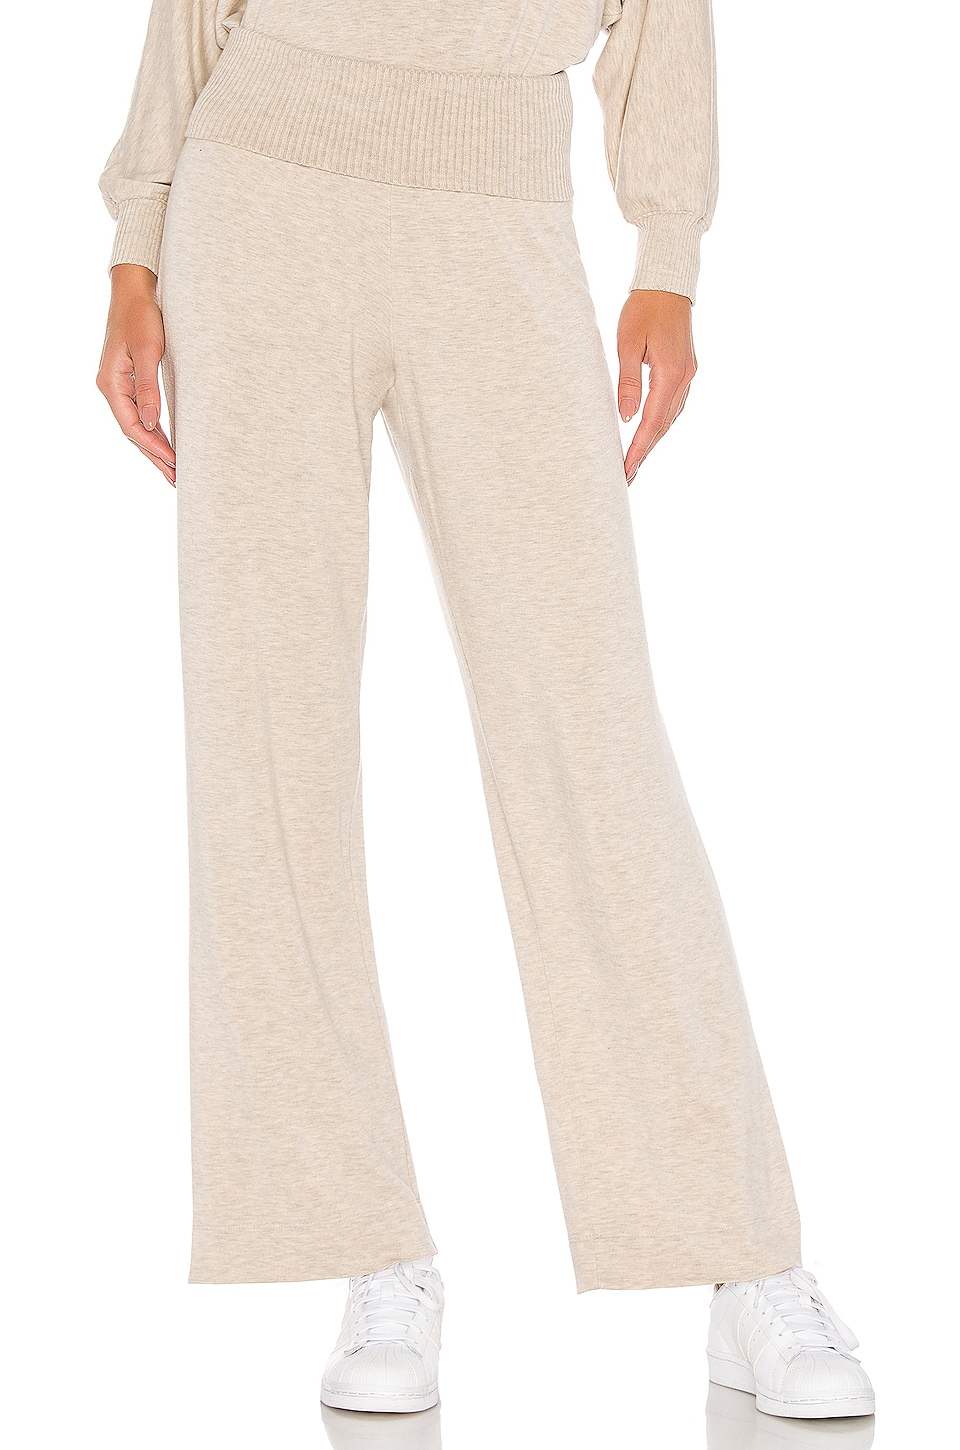 Splendid Super Soft Rib Pant in Heather Oatmeal